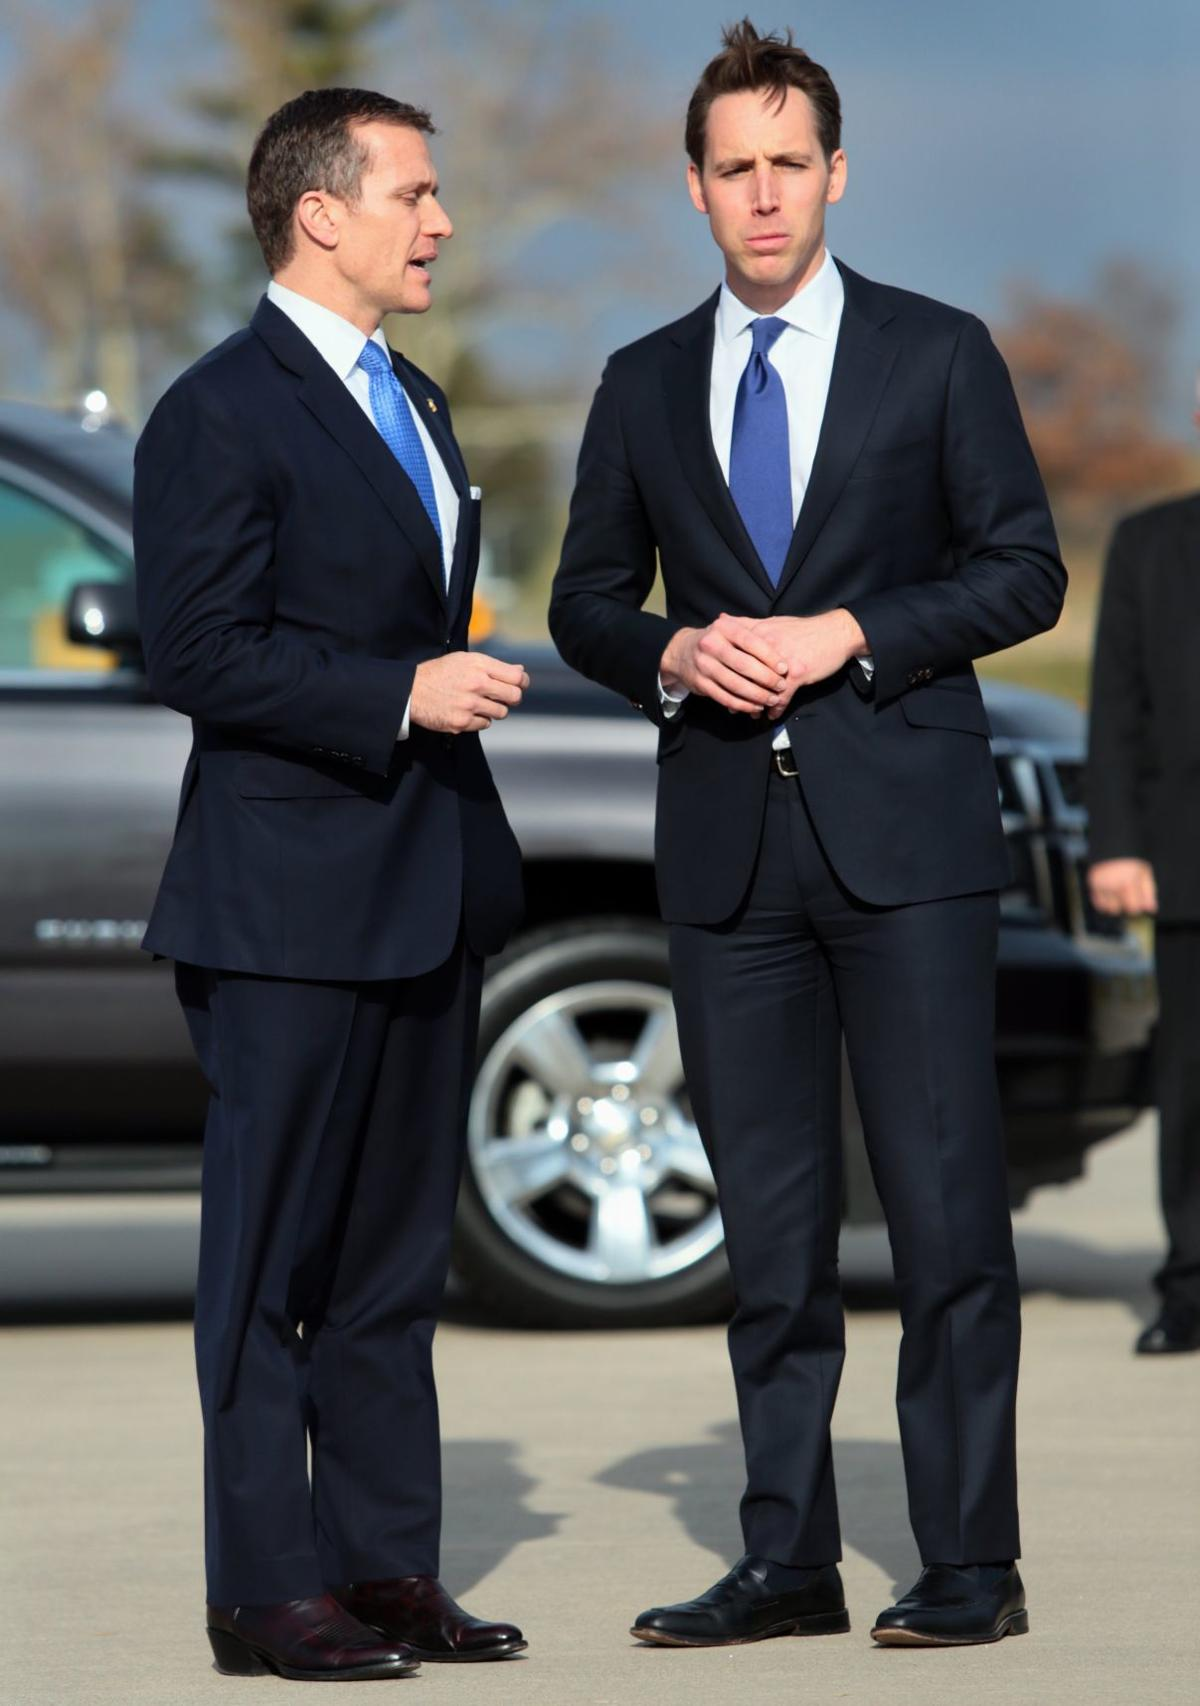 Greitens, Hawley on hand for Trump visit